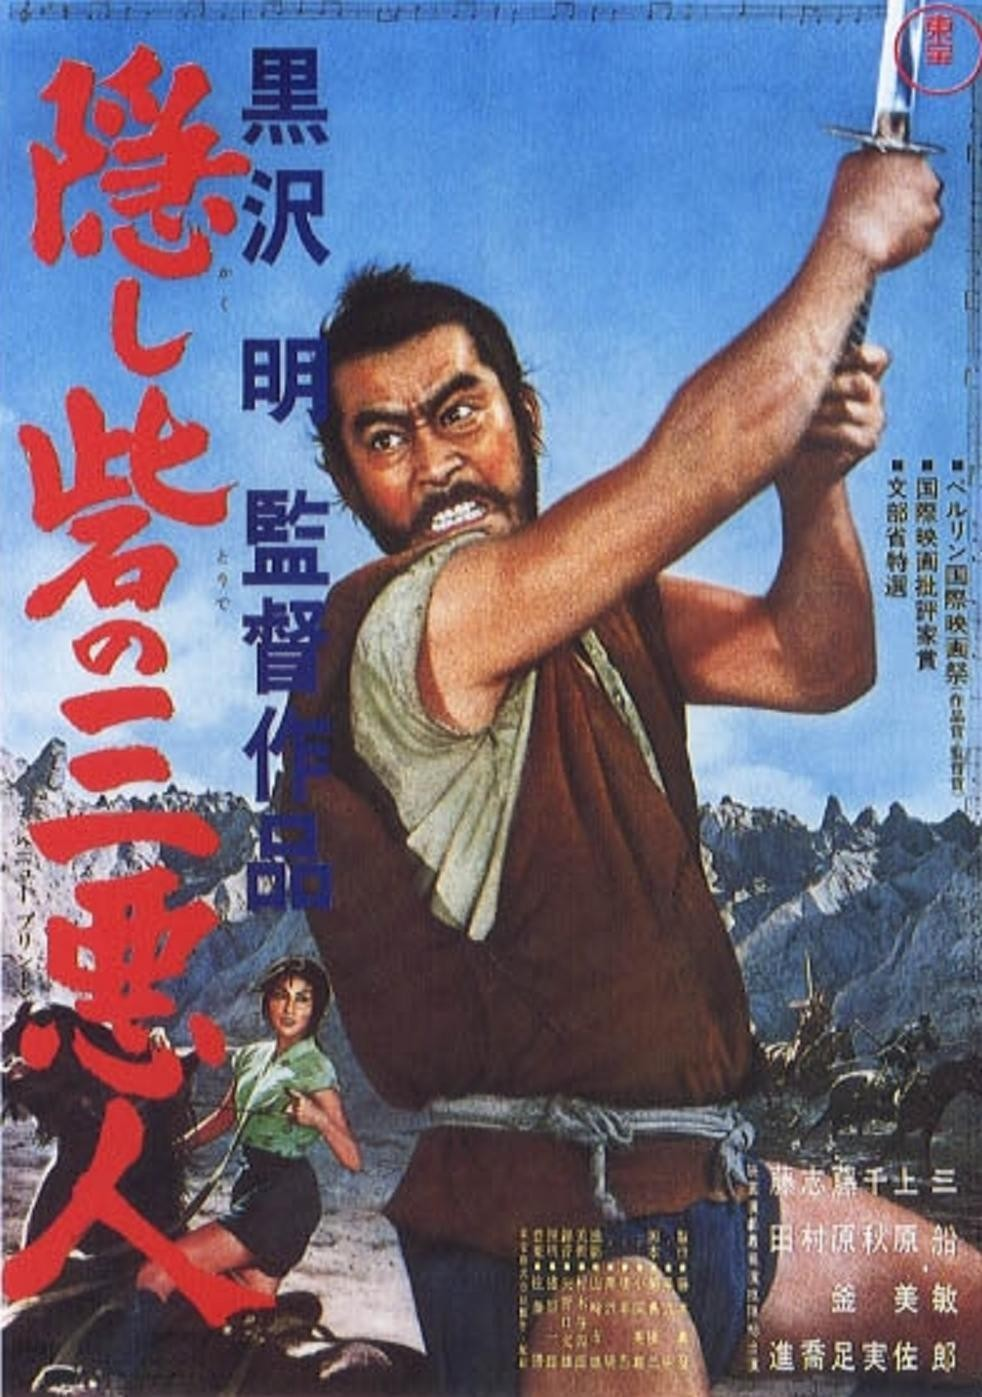 The original poster for The Hidden Fortress, or 隠し砦の三悪人 Kakushi toride no san akunin?, translated literally into, The Three Villains of the Hidden Fortress.